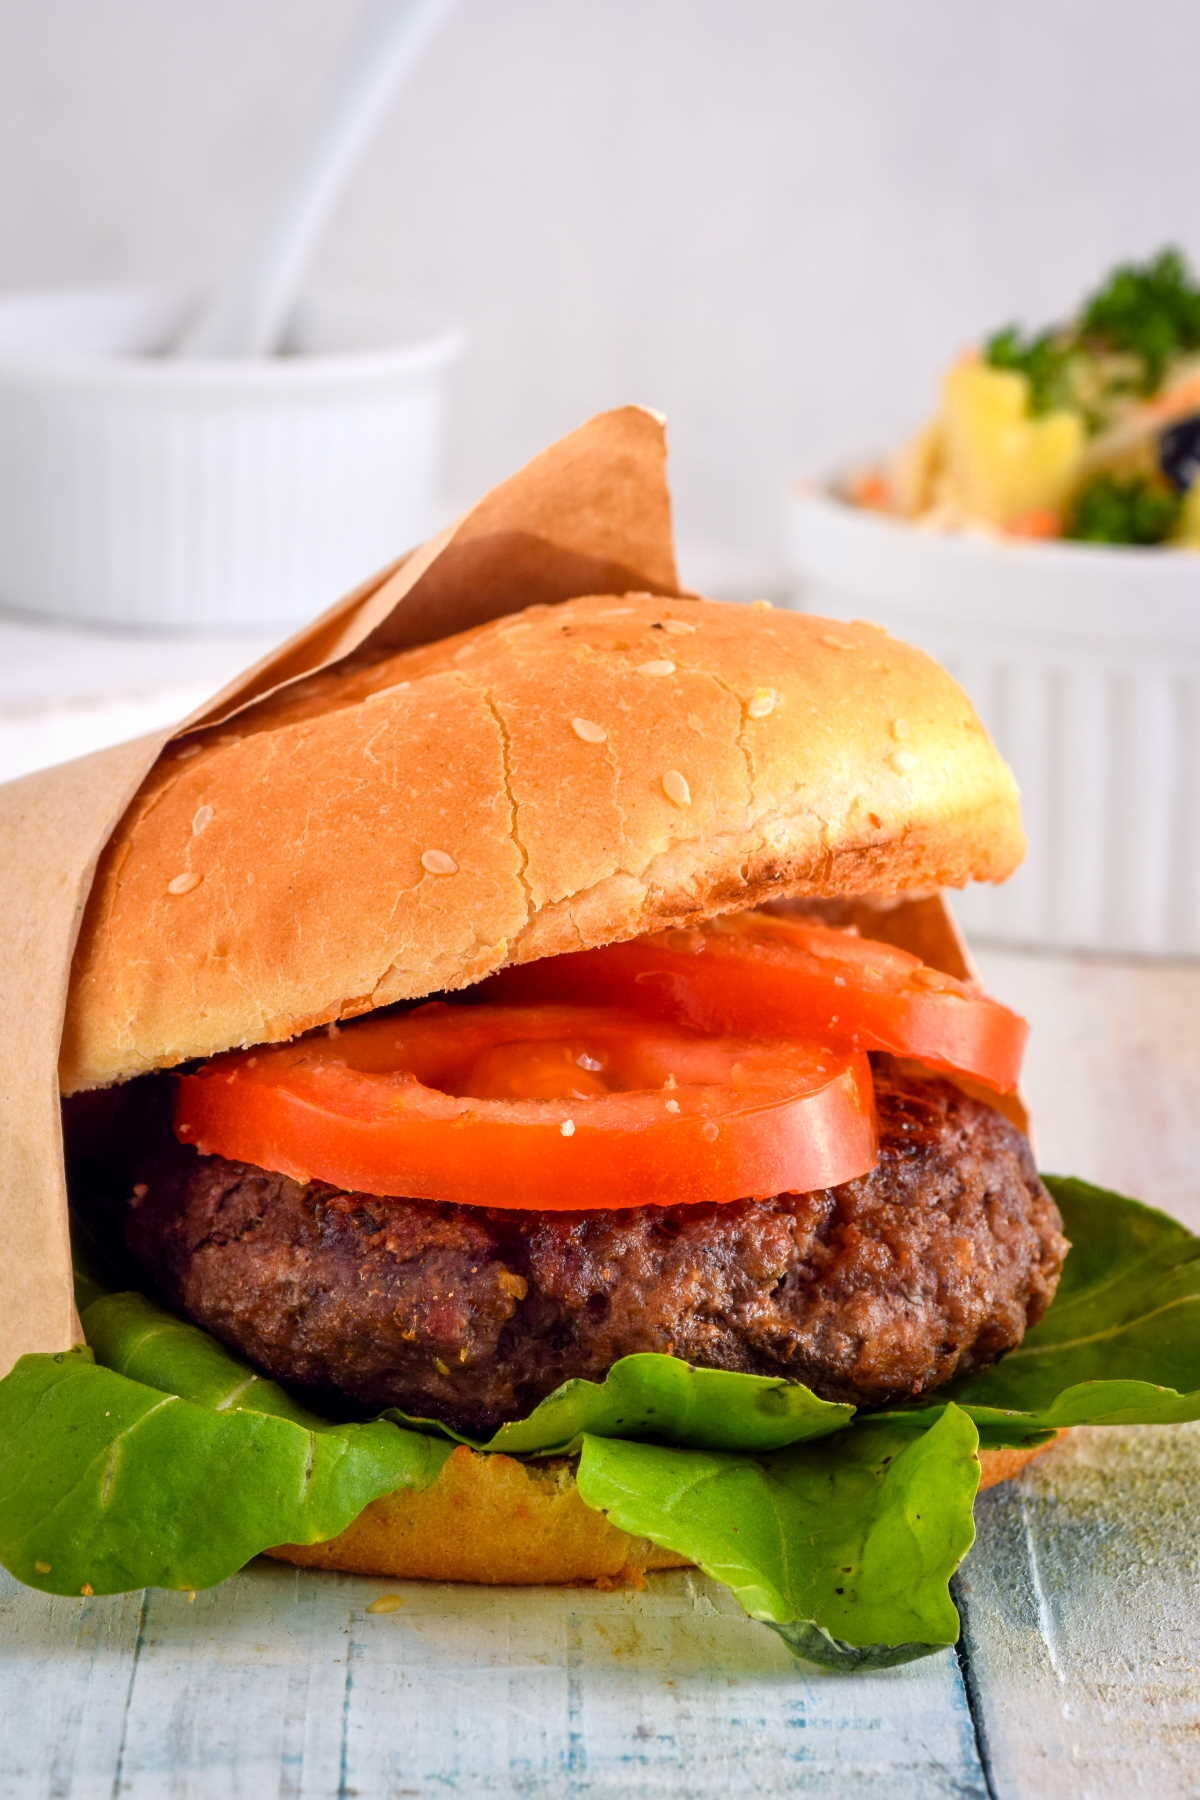 Electric Skillet Hamburgers on wooden background with salad and tortilla chips on the side.